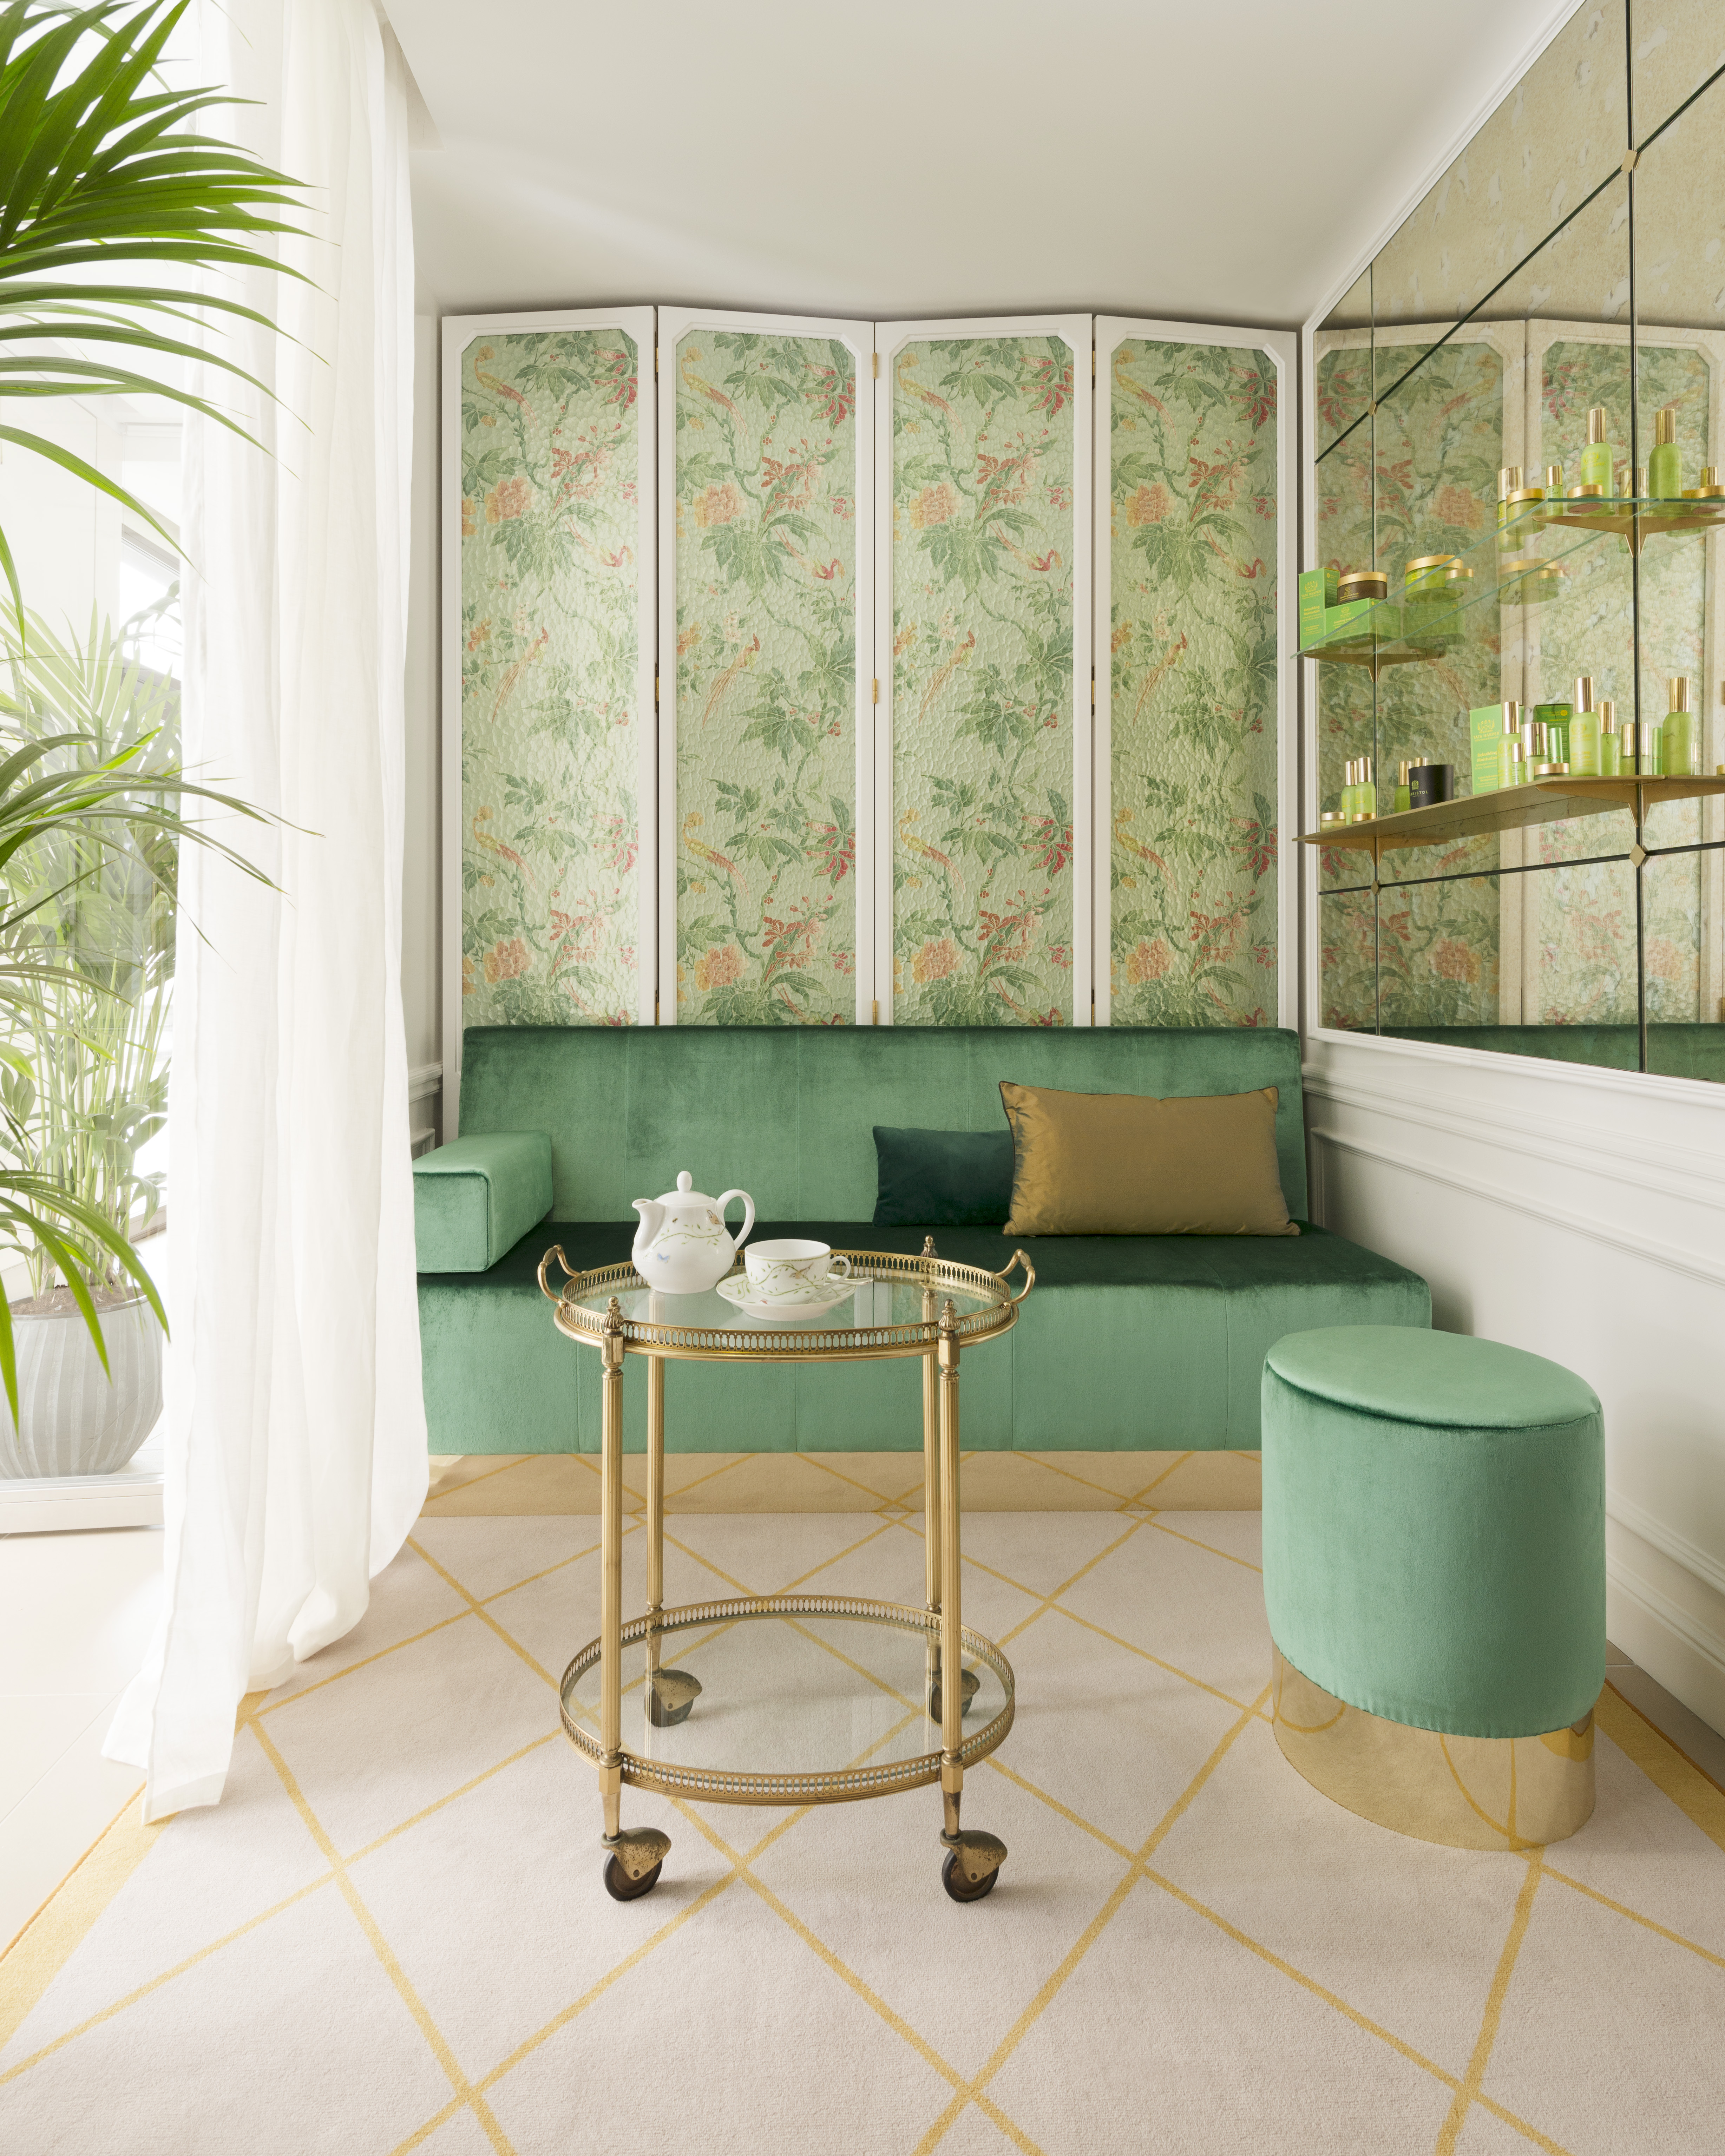 Le_Bristol_Paris-Tata_Harper_Spa_Room-1_3603